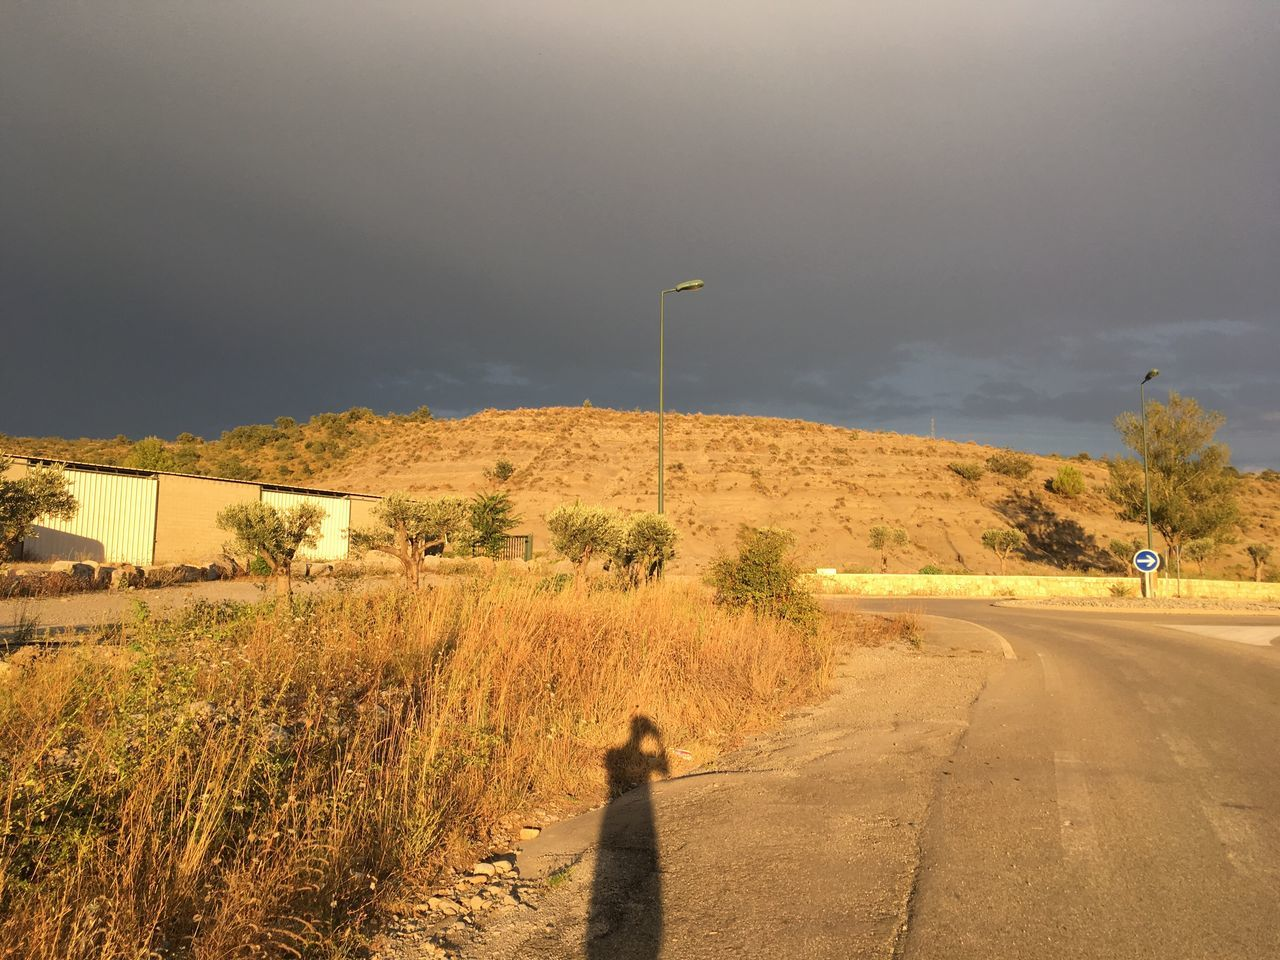 road, the way forward, real people, one person, landscape, outdoors, transportation, sky, sunlight, nature, adventure, shadow, day, mountain, tree, mammal